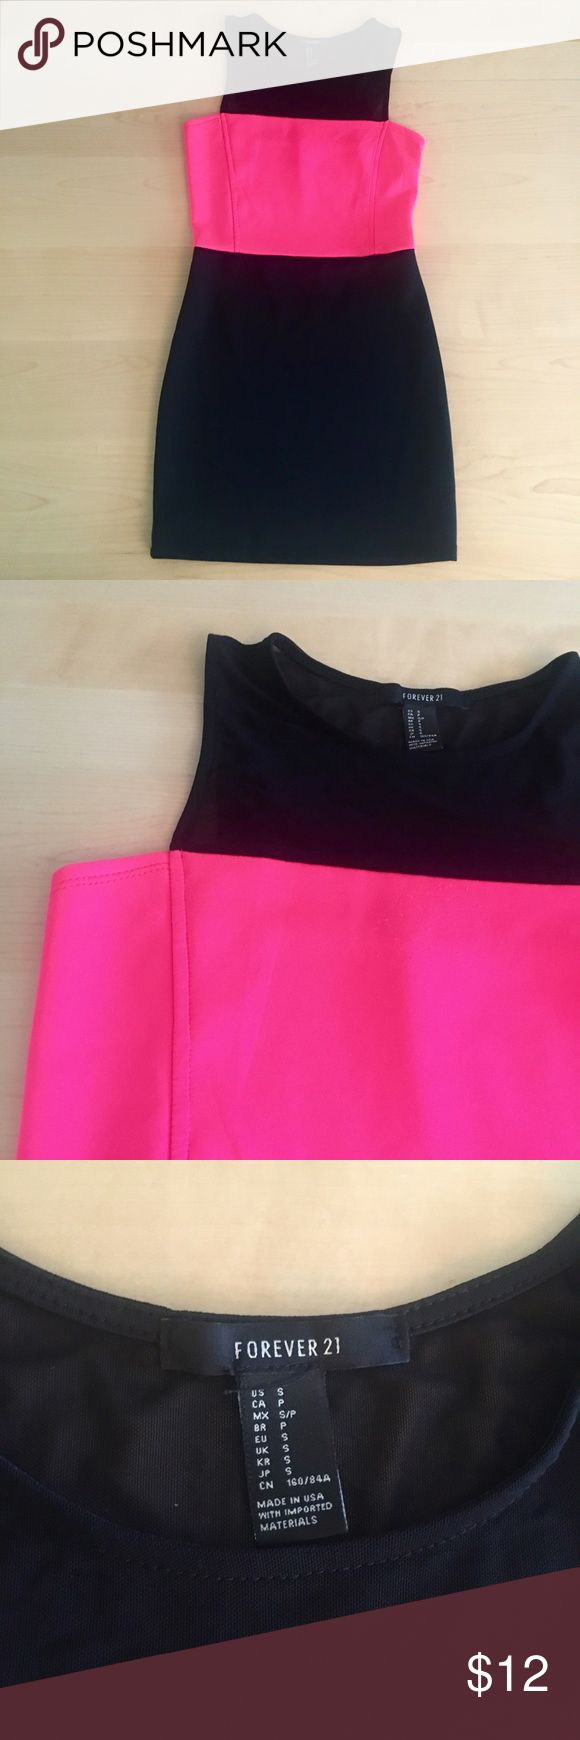 Bodycon dress from Forever 21 Black and hot pink bodycon dress from Forever 21. Black at the top is a see through mesh. Really flattering cut. Only worn once. Forever 21 Dresses Mini